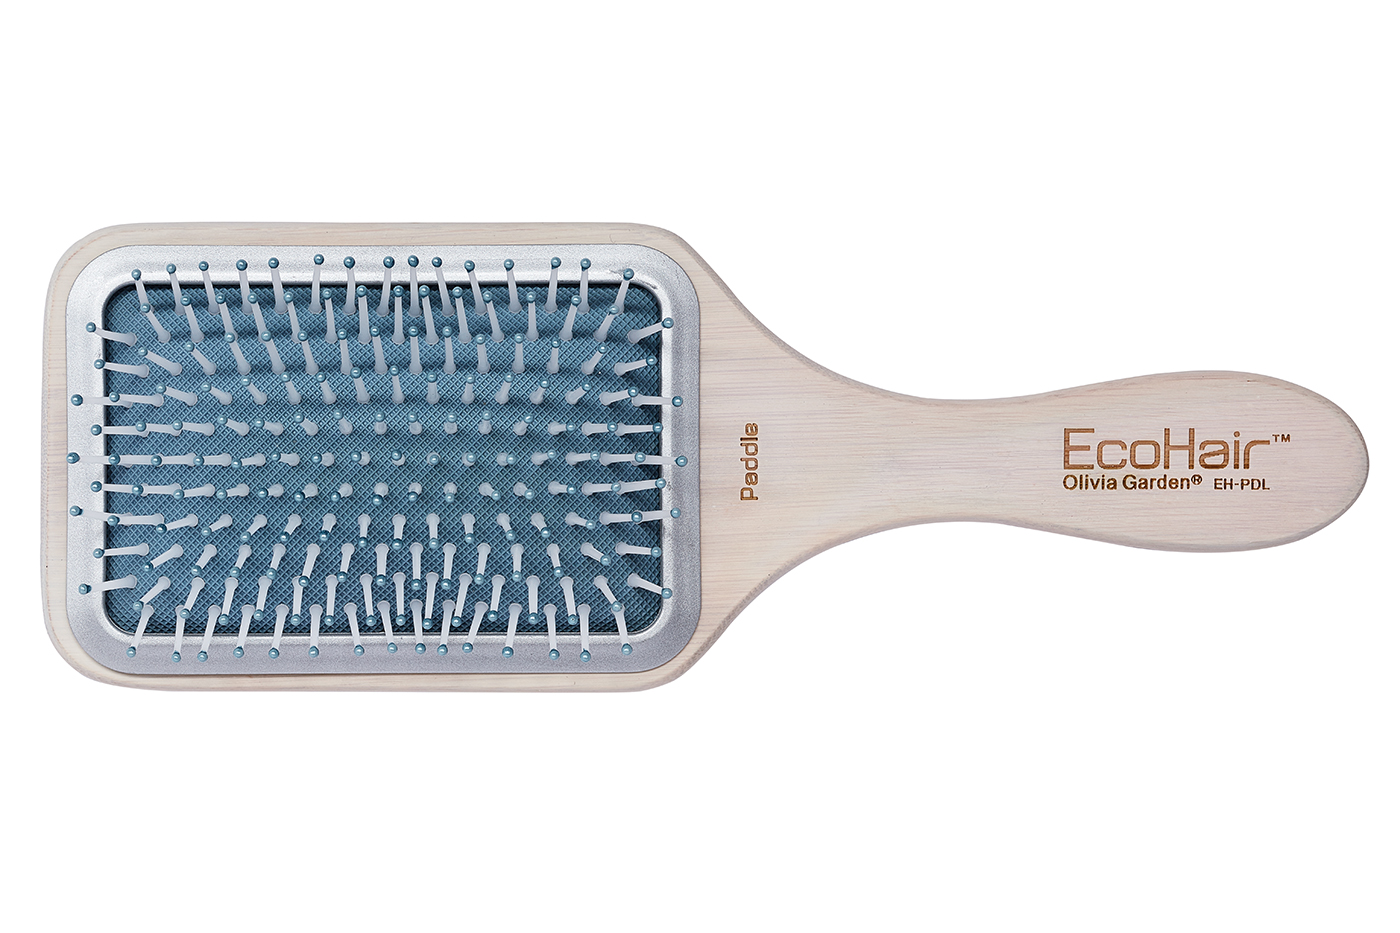 Olivia Garden's eco-friendly hair brush